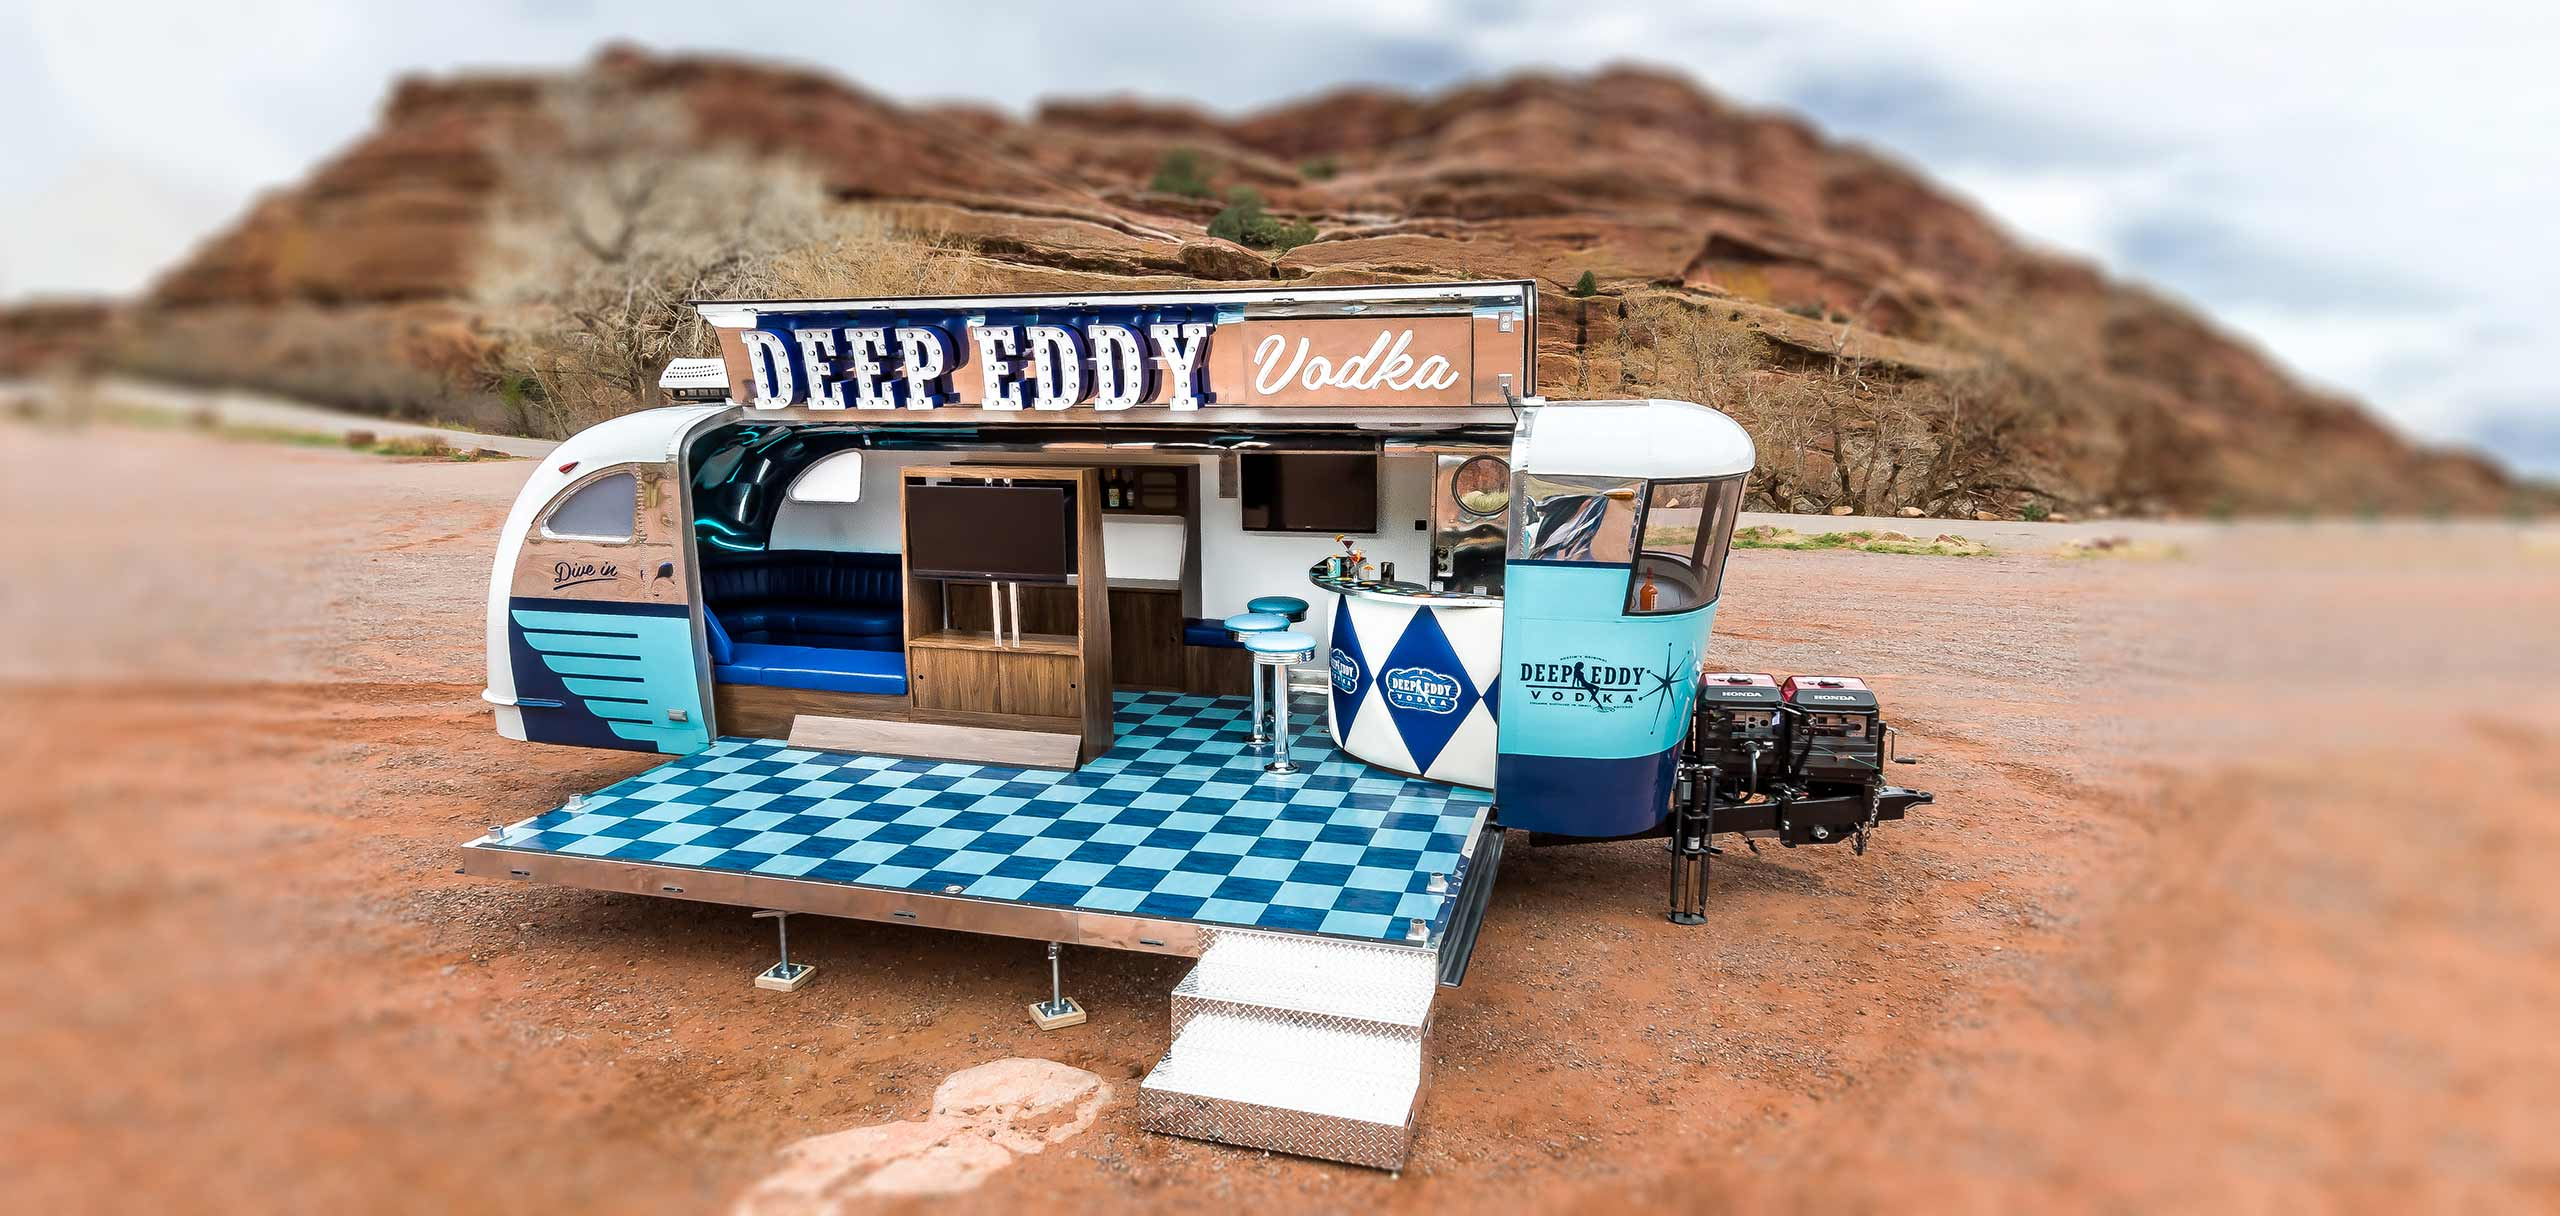 Slider – Deep-Eddy-Vodka-Spartan-Trailer-by-Timeless-Travel-Trailers_web-low